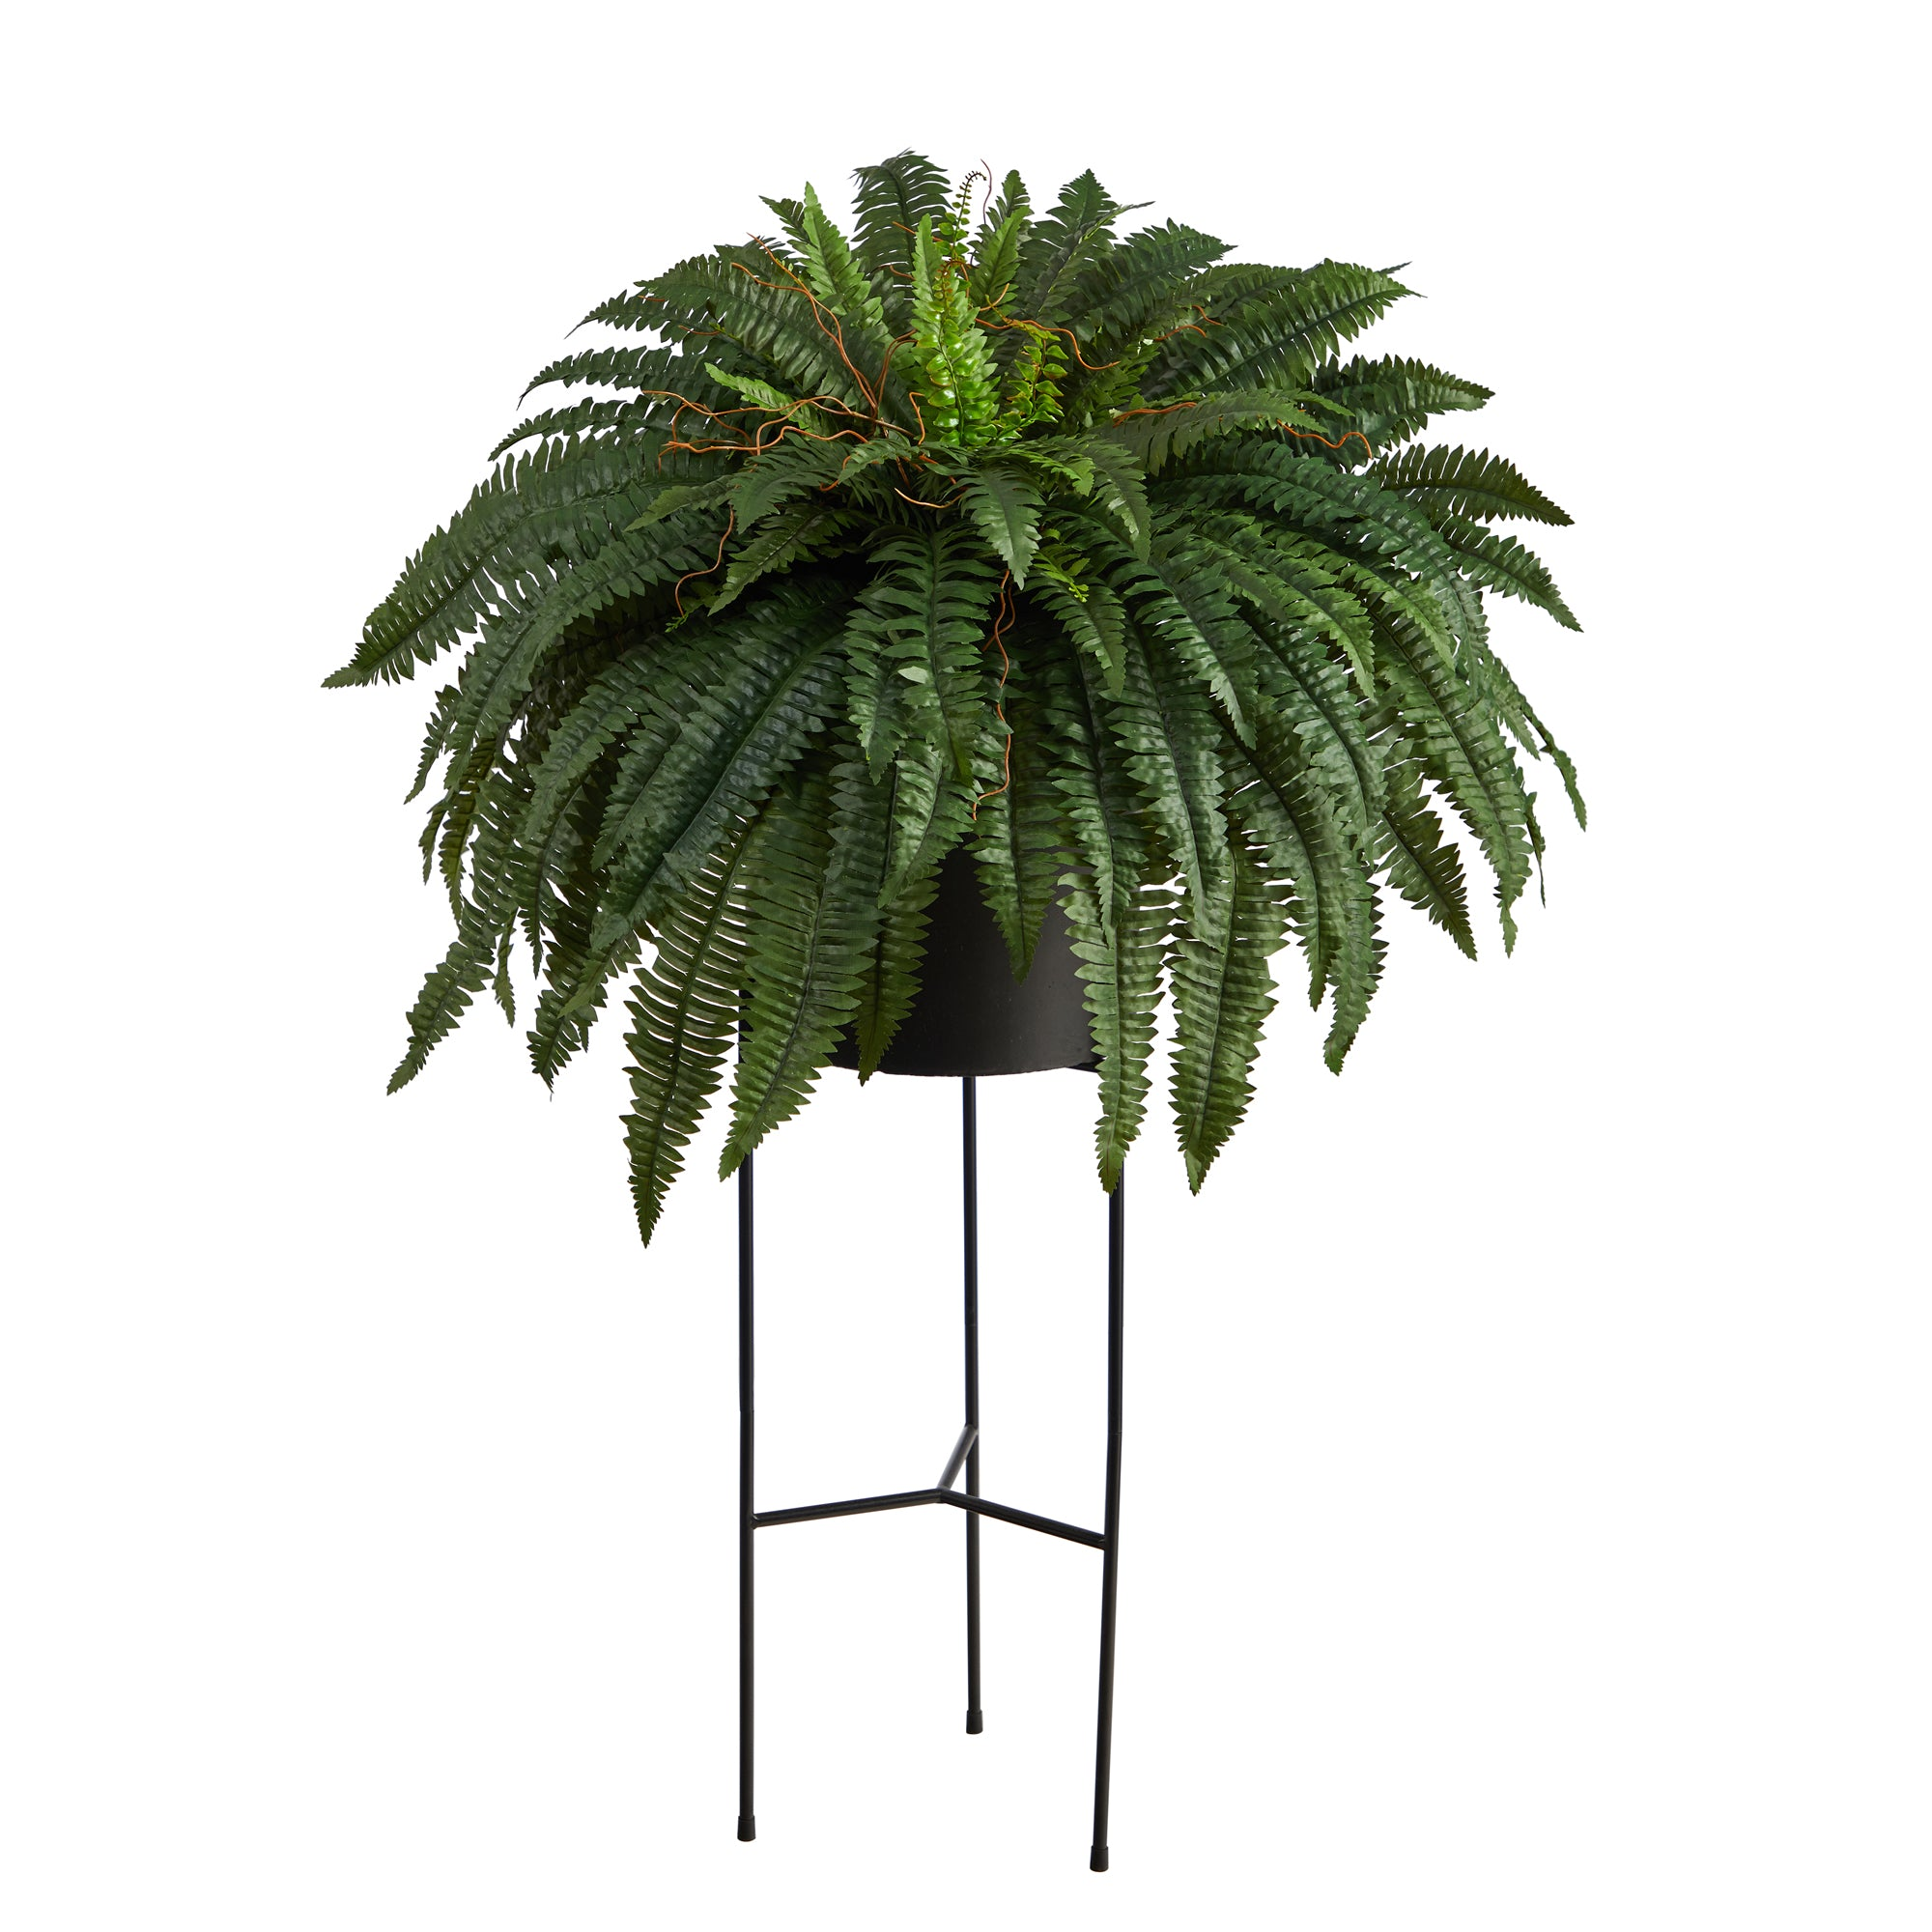 Boston Fern Artificial Plant in Black Planter with Stand, 51""